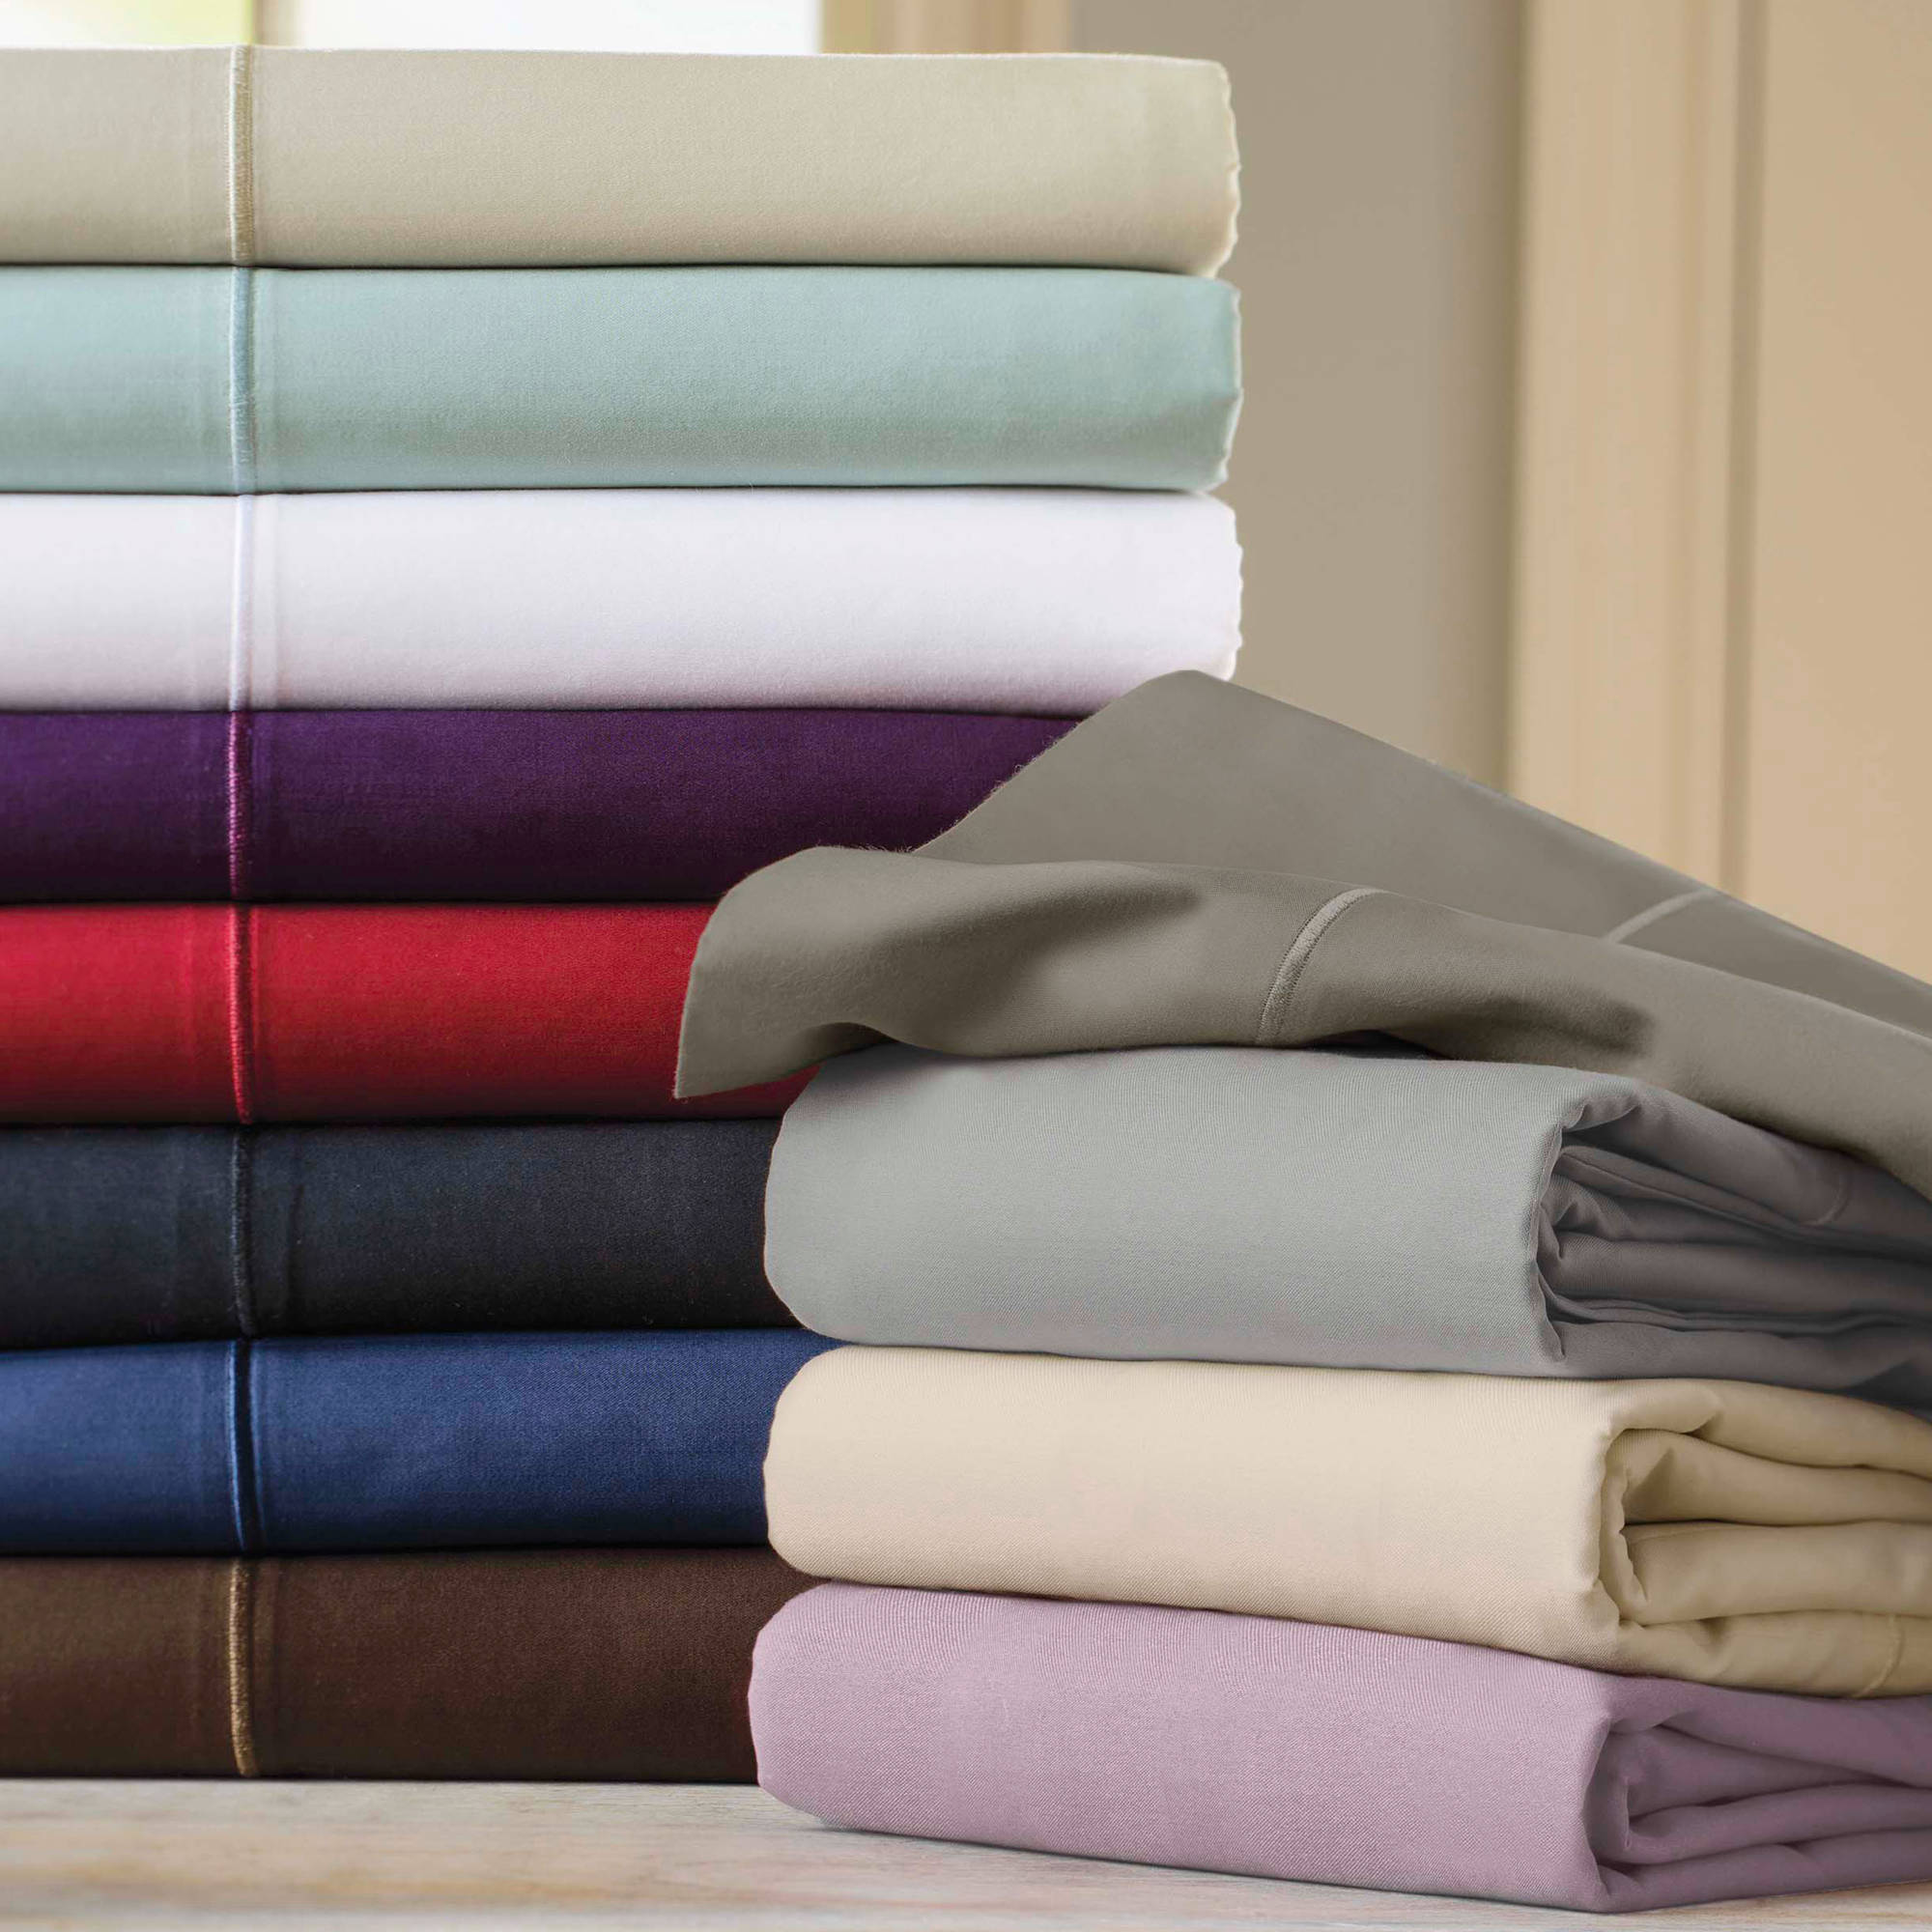 Better Homes and Gardens 400 Thread Count Egyptian Cotton Pillowcase Set - Walmart.com & Better Homes and Gardens 400 Thread Count Egyptian Cotton ...